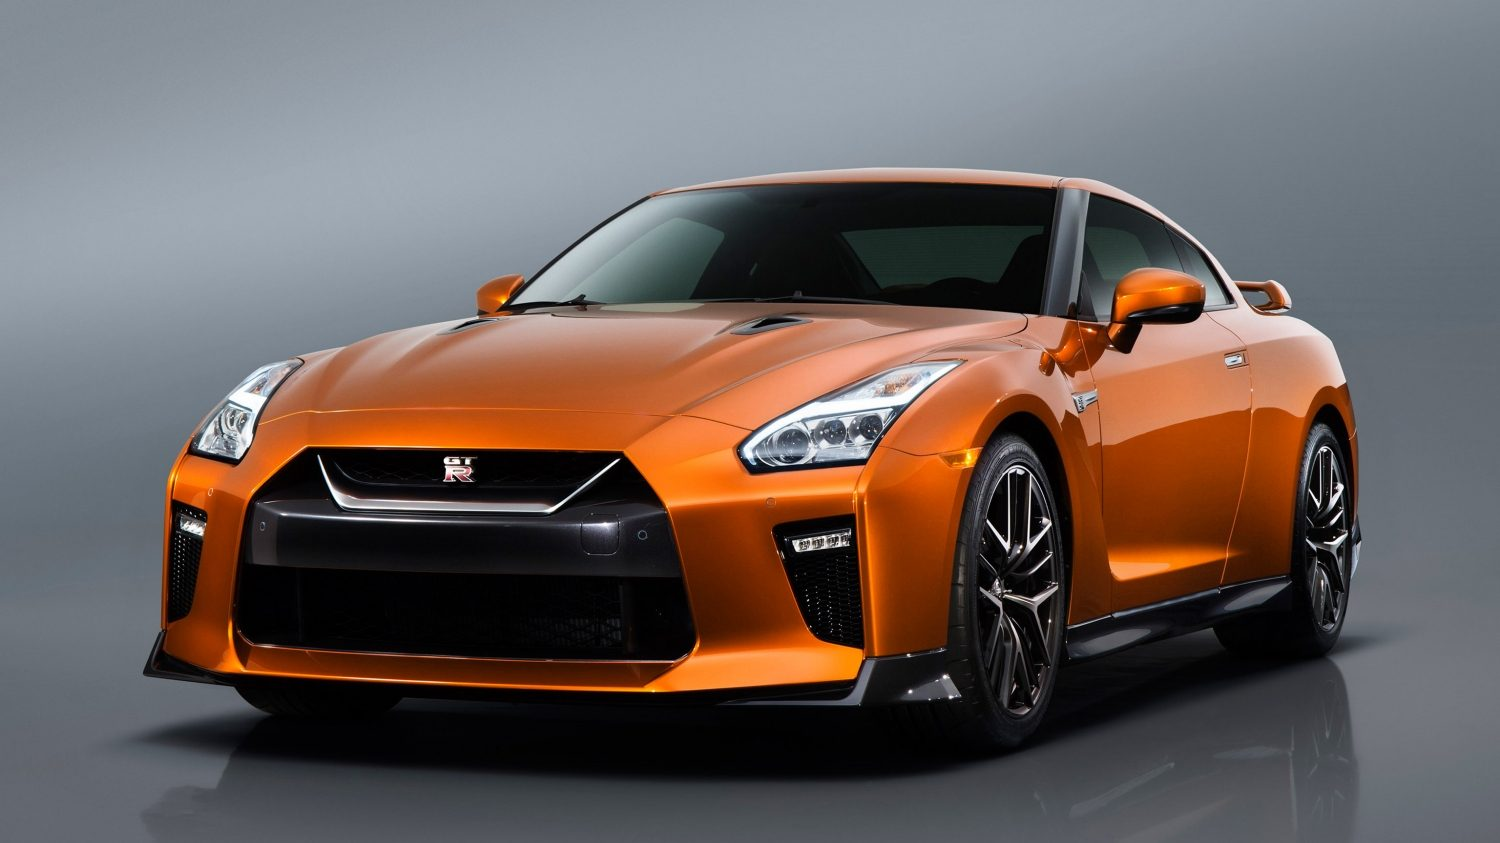 GTR in Orange front view